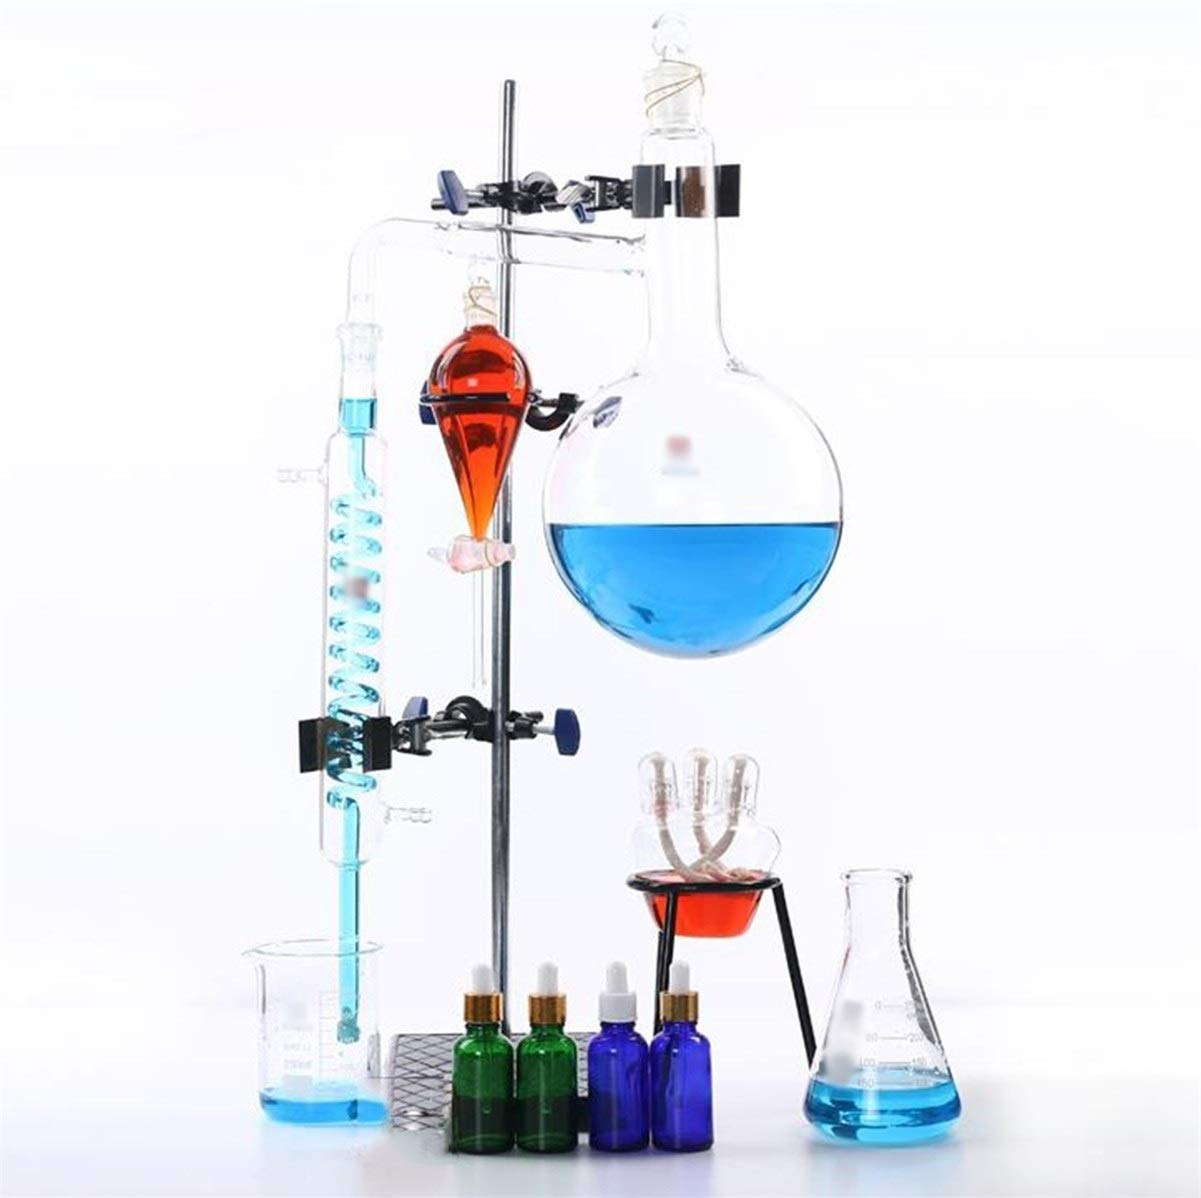 Wyyggnb Laboratory Equipment, Complete Distillation Unit Laboratory Teaching Equipment Making Essential Oils Alcohol Distilled Water Filter by Wyyggnb